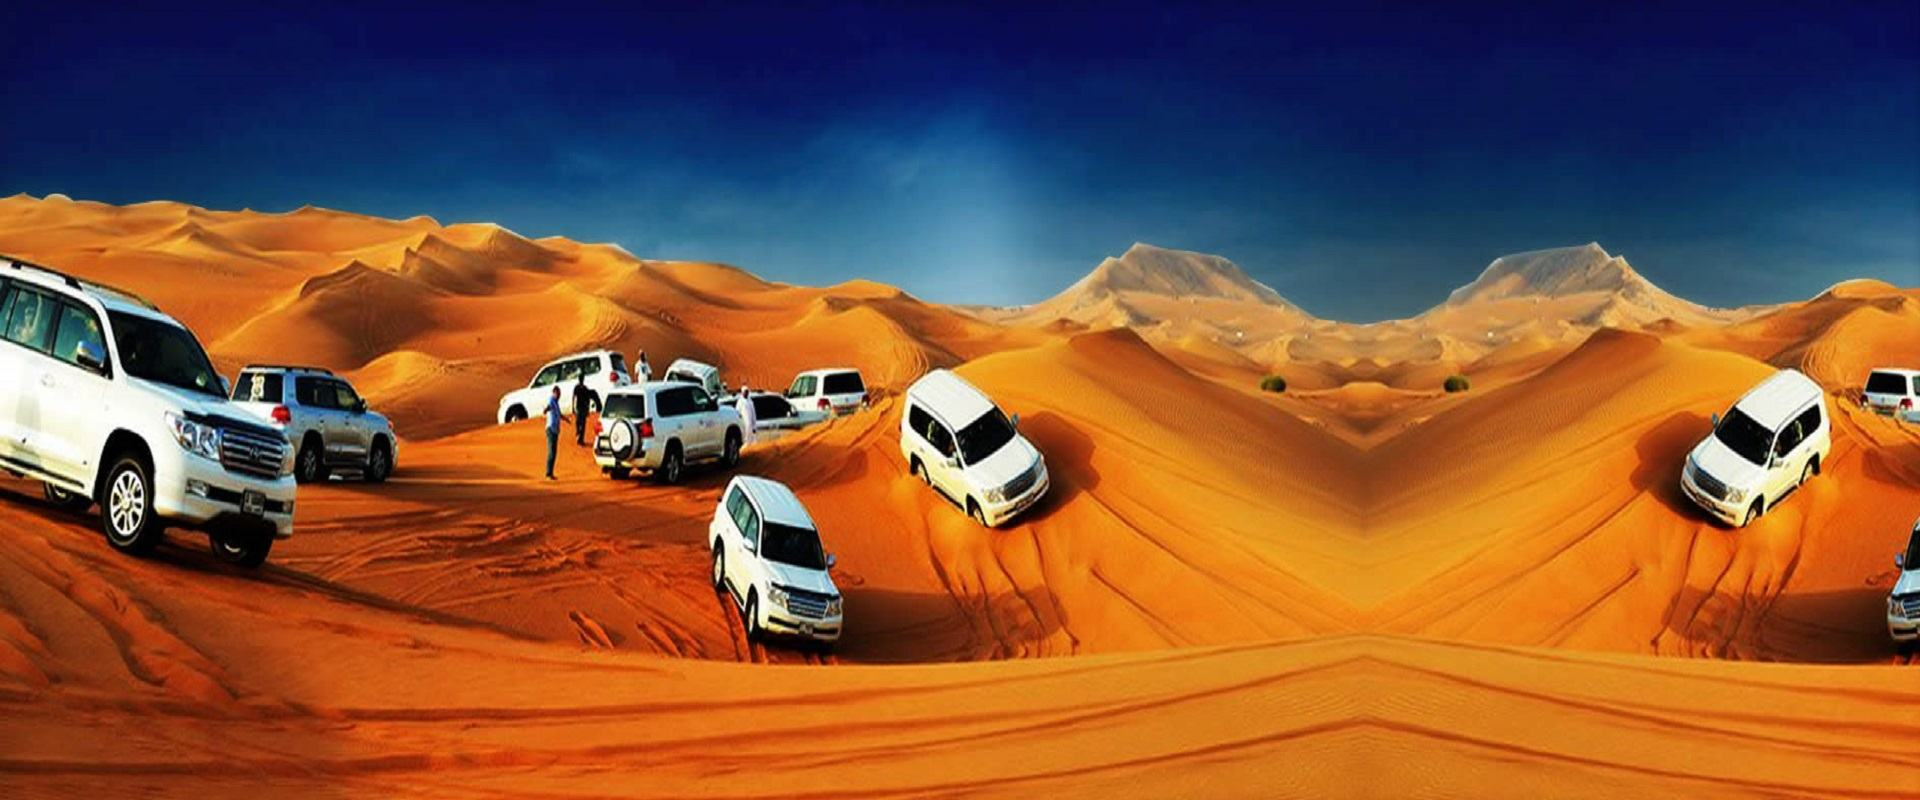 Arabian Desert Safari